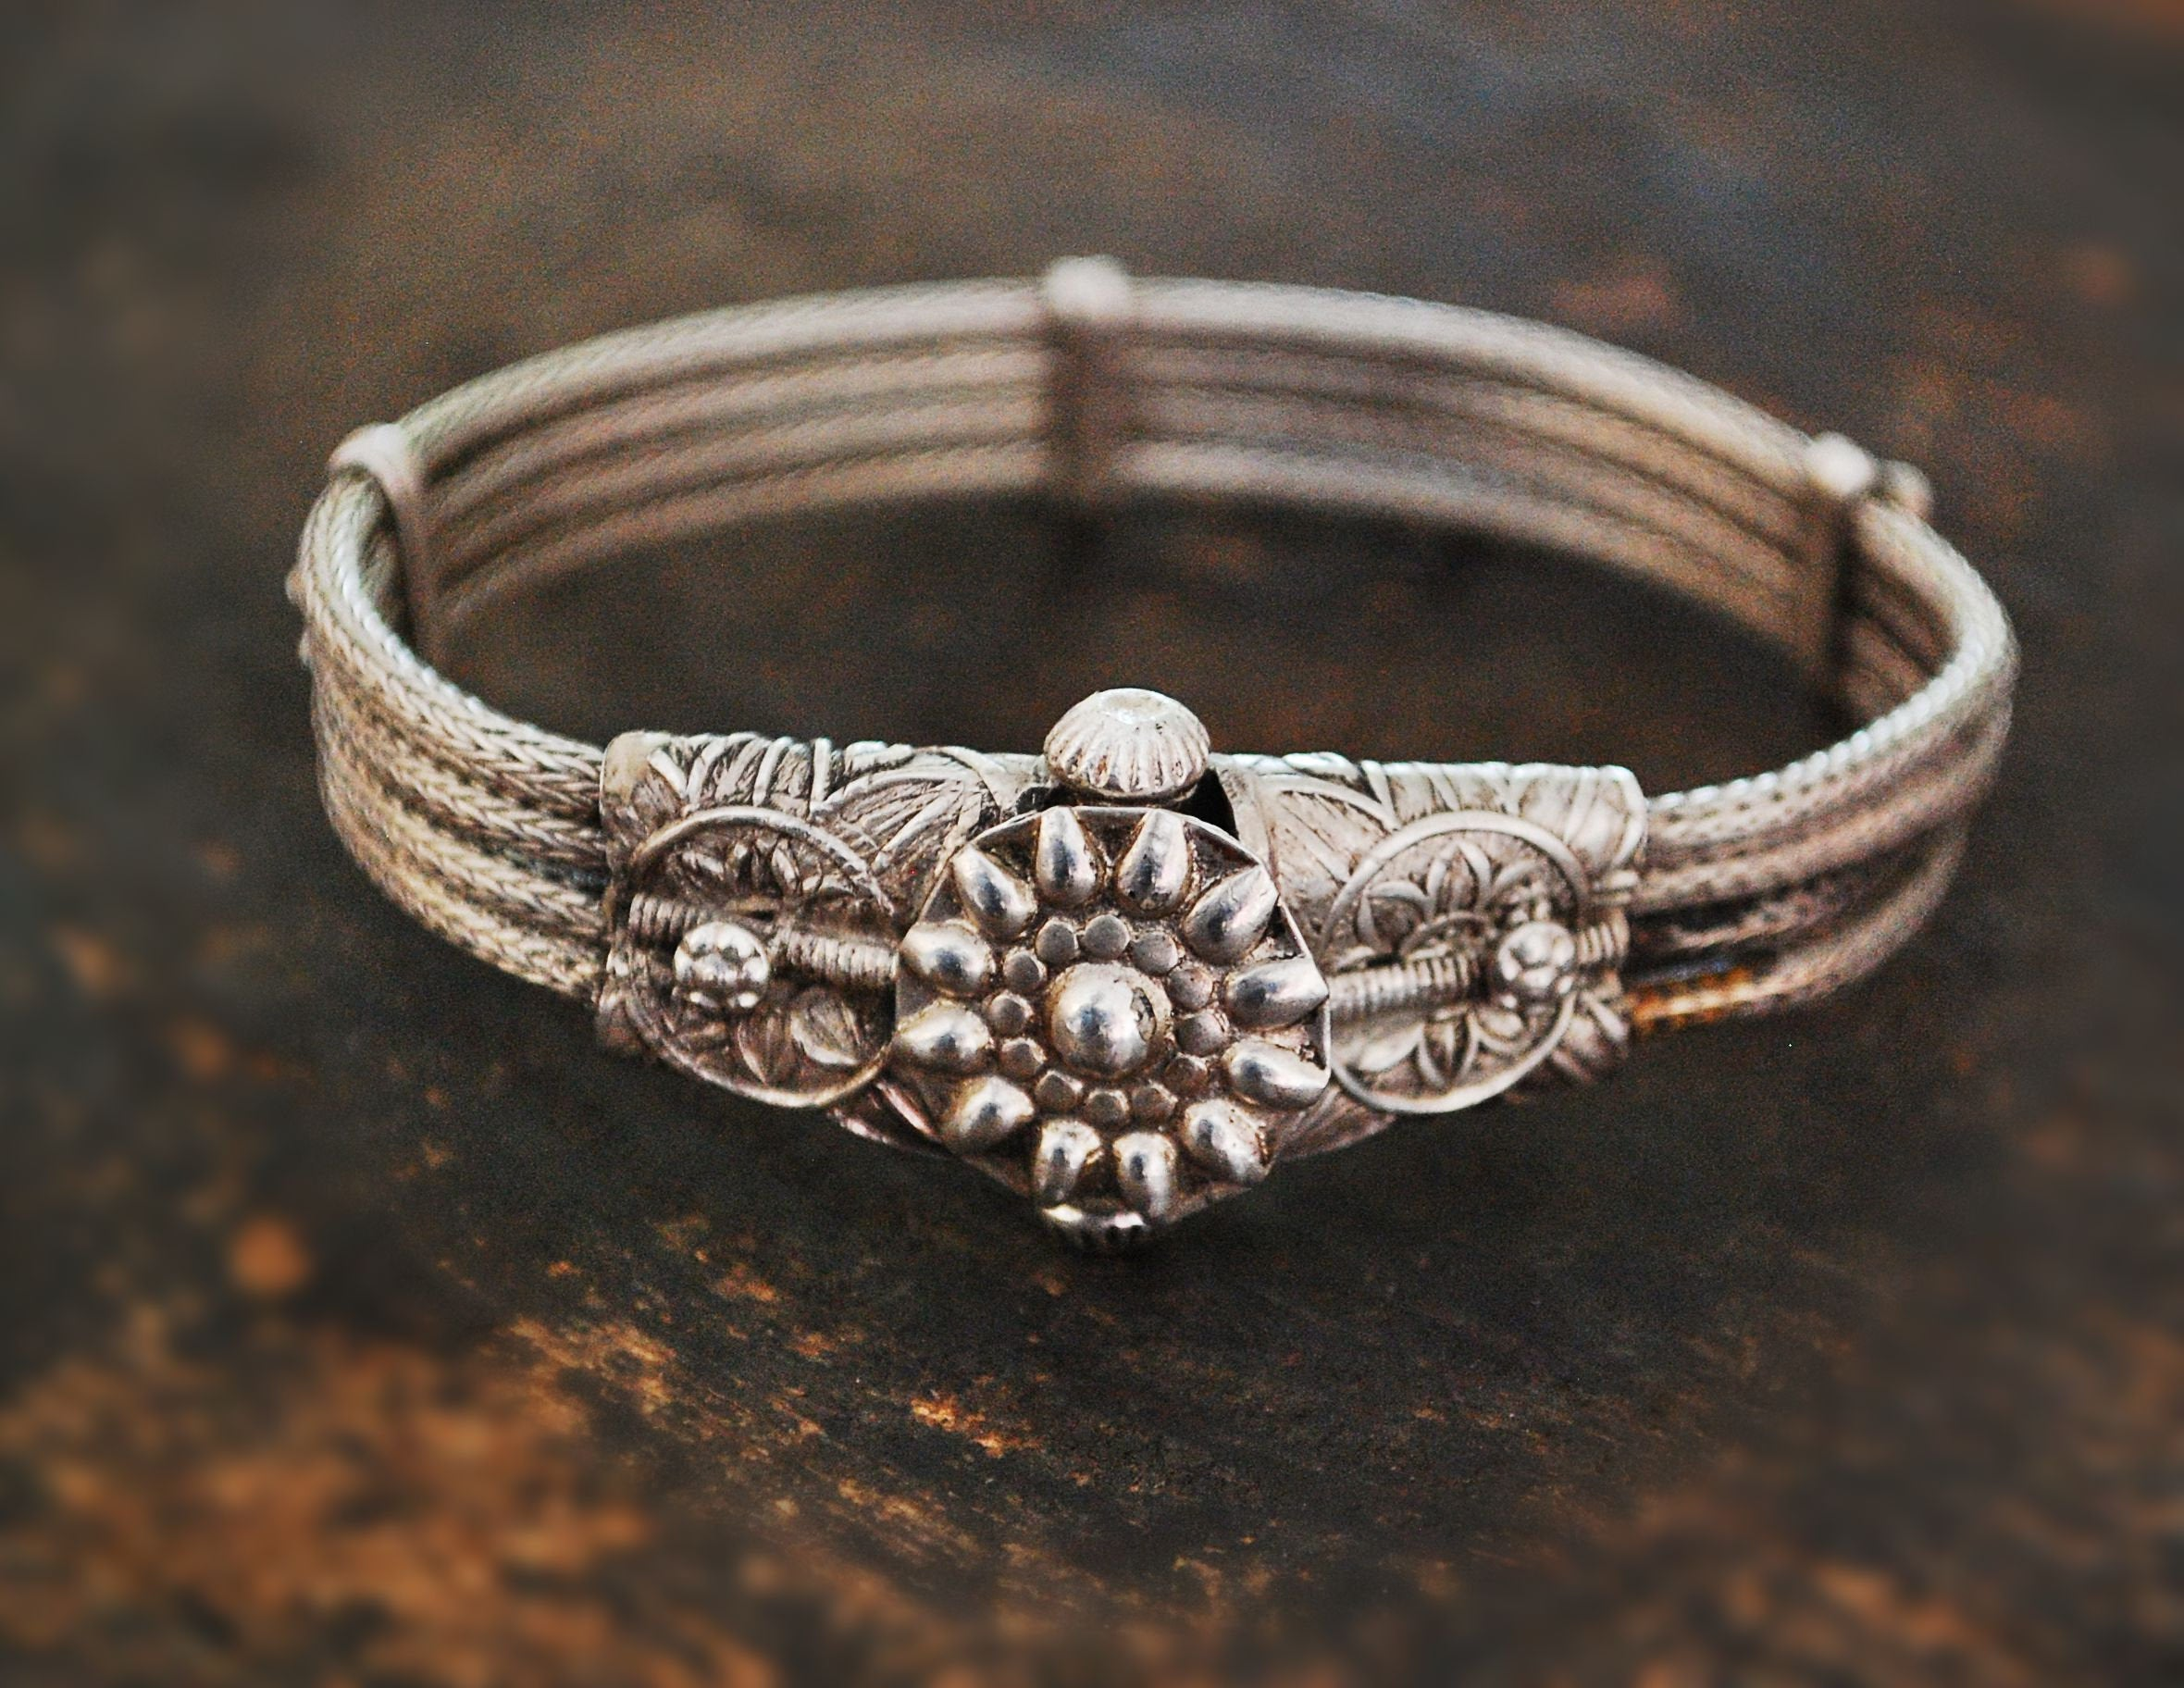 Rajasthani Silver Bracelet - Indian Snake Chain Bracelet - Rajasthan Snake Chain Bracelet with Flowers - Rajasthani Jewelry